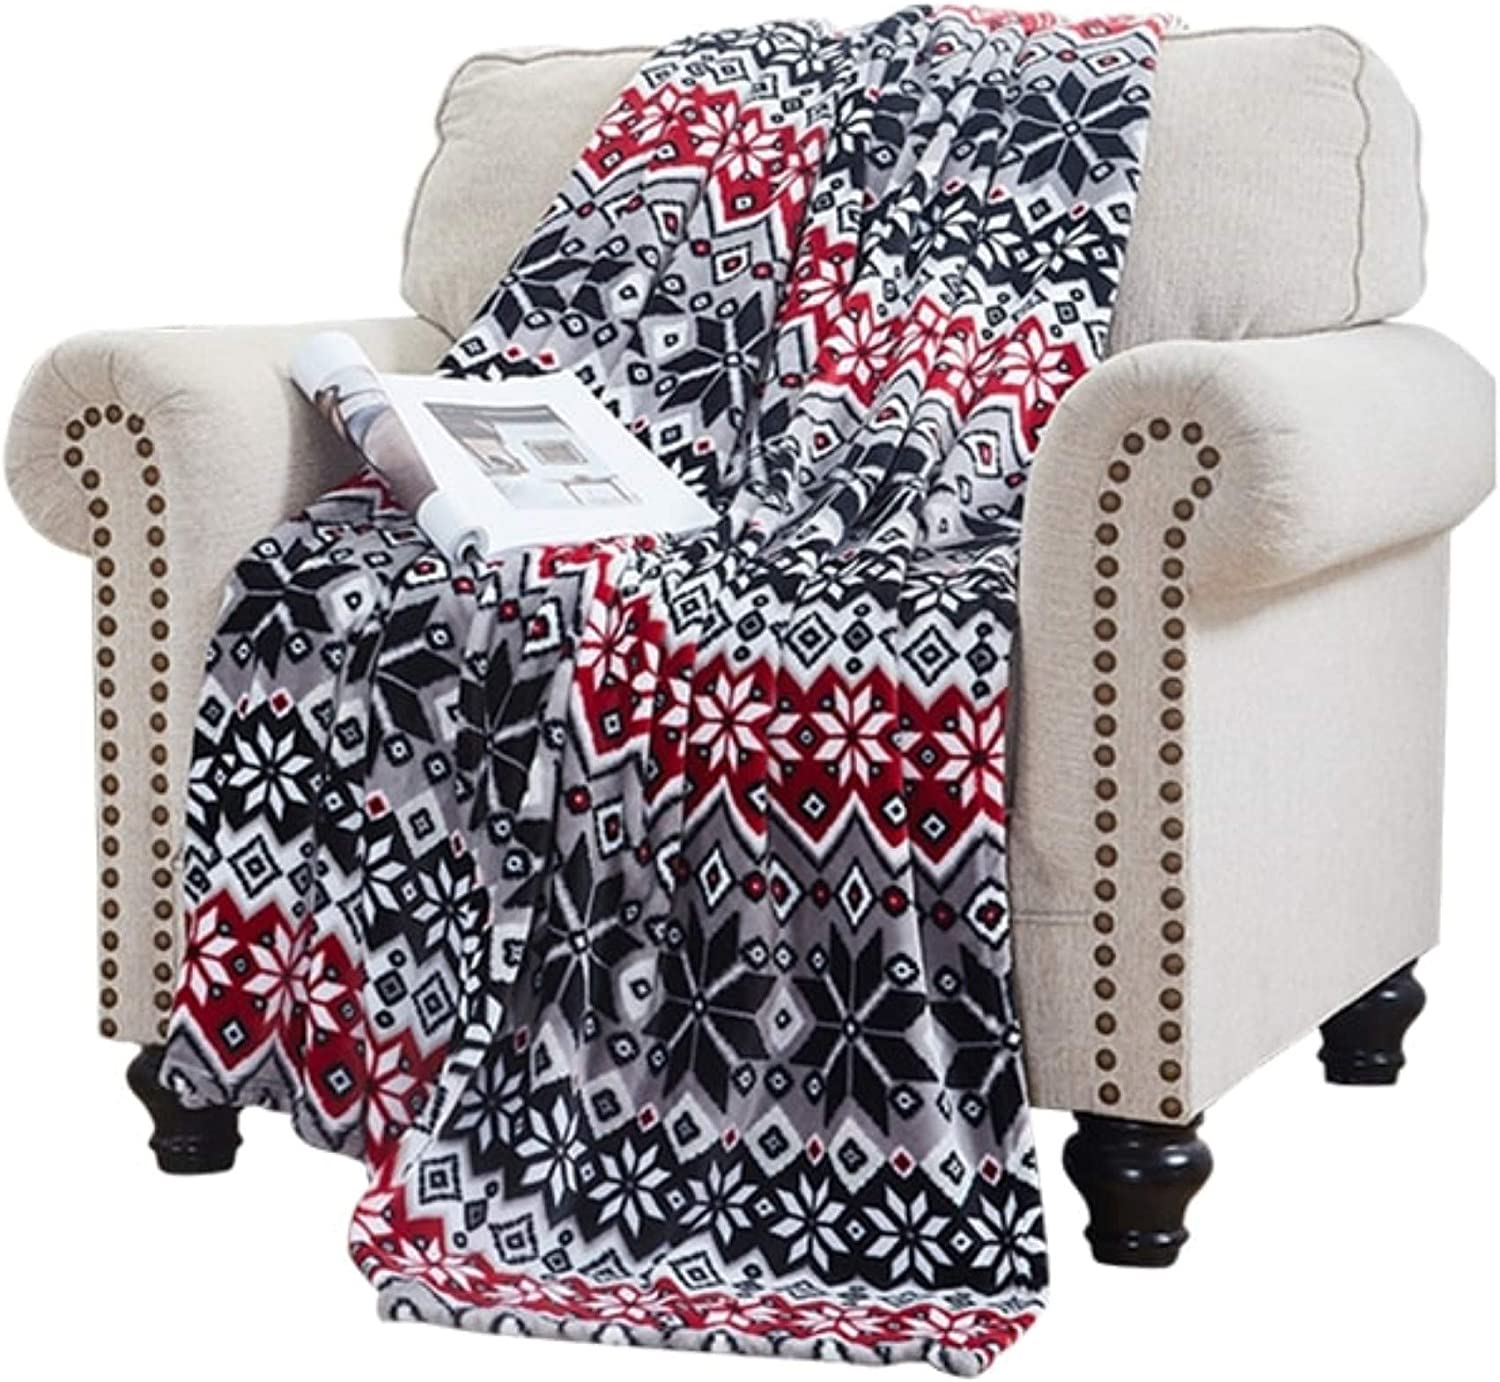 Elle Home Plush Oversized Throw Blanket - Silky Soft Flannel Fleece, Soft and Cozy, for Bed and Couch - Oversized Throw 60